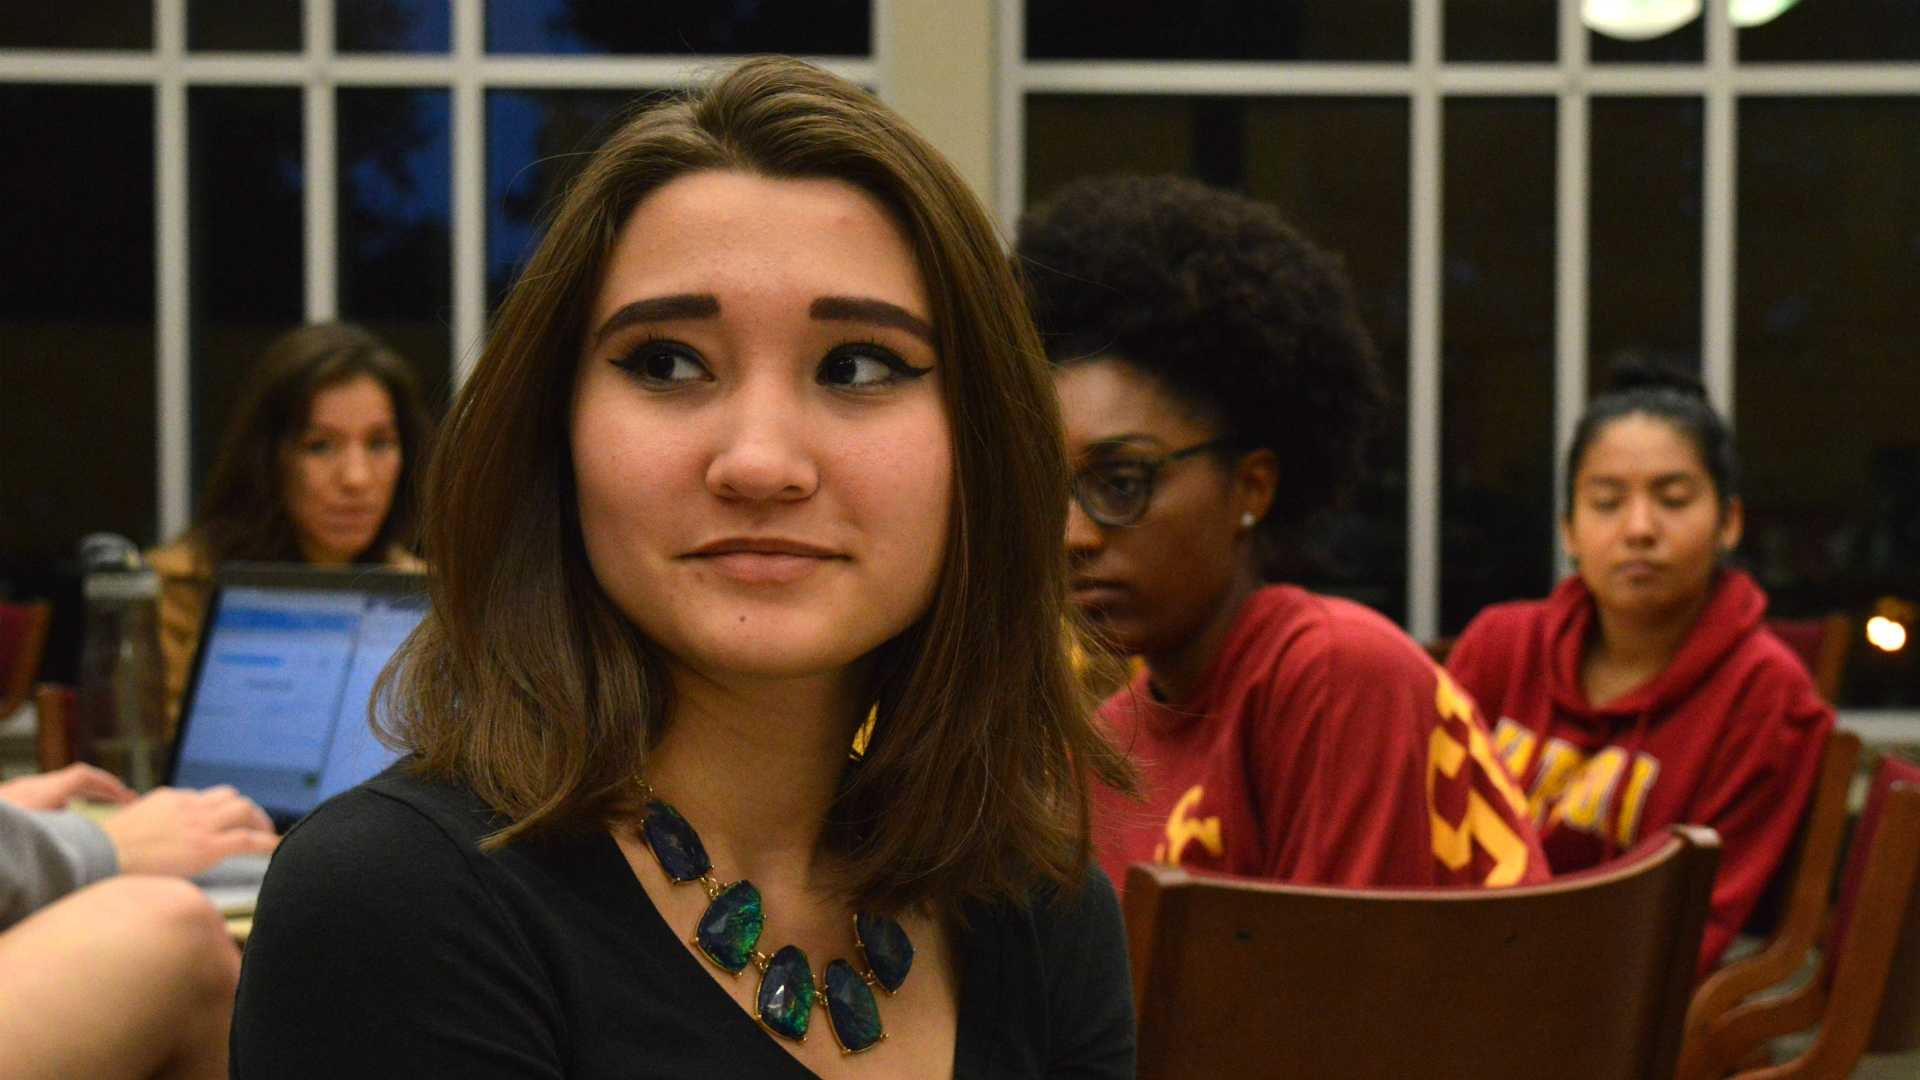 Students were placed into small groups and encouraged to discuss their experiences of oppression or discrimination at a community forum on Monday, Oct. 10, 2016. (Lucy DeBisschop/The Simpsonian)